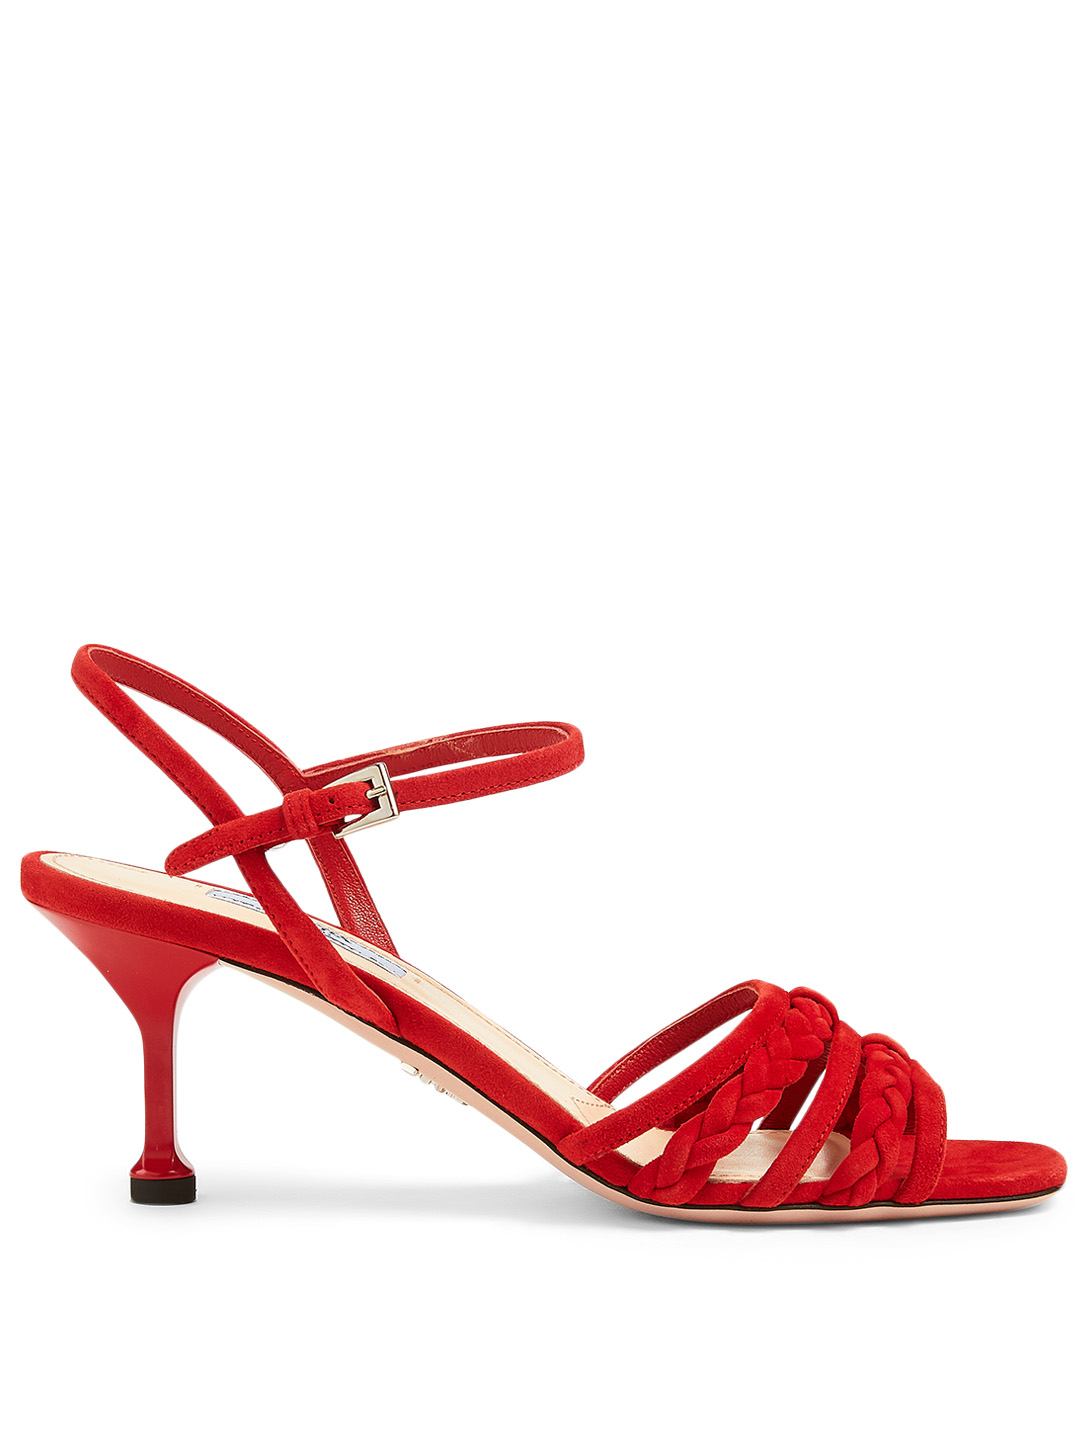 PRADA Braided Leather Heeled Sandals Women's Red